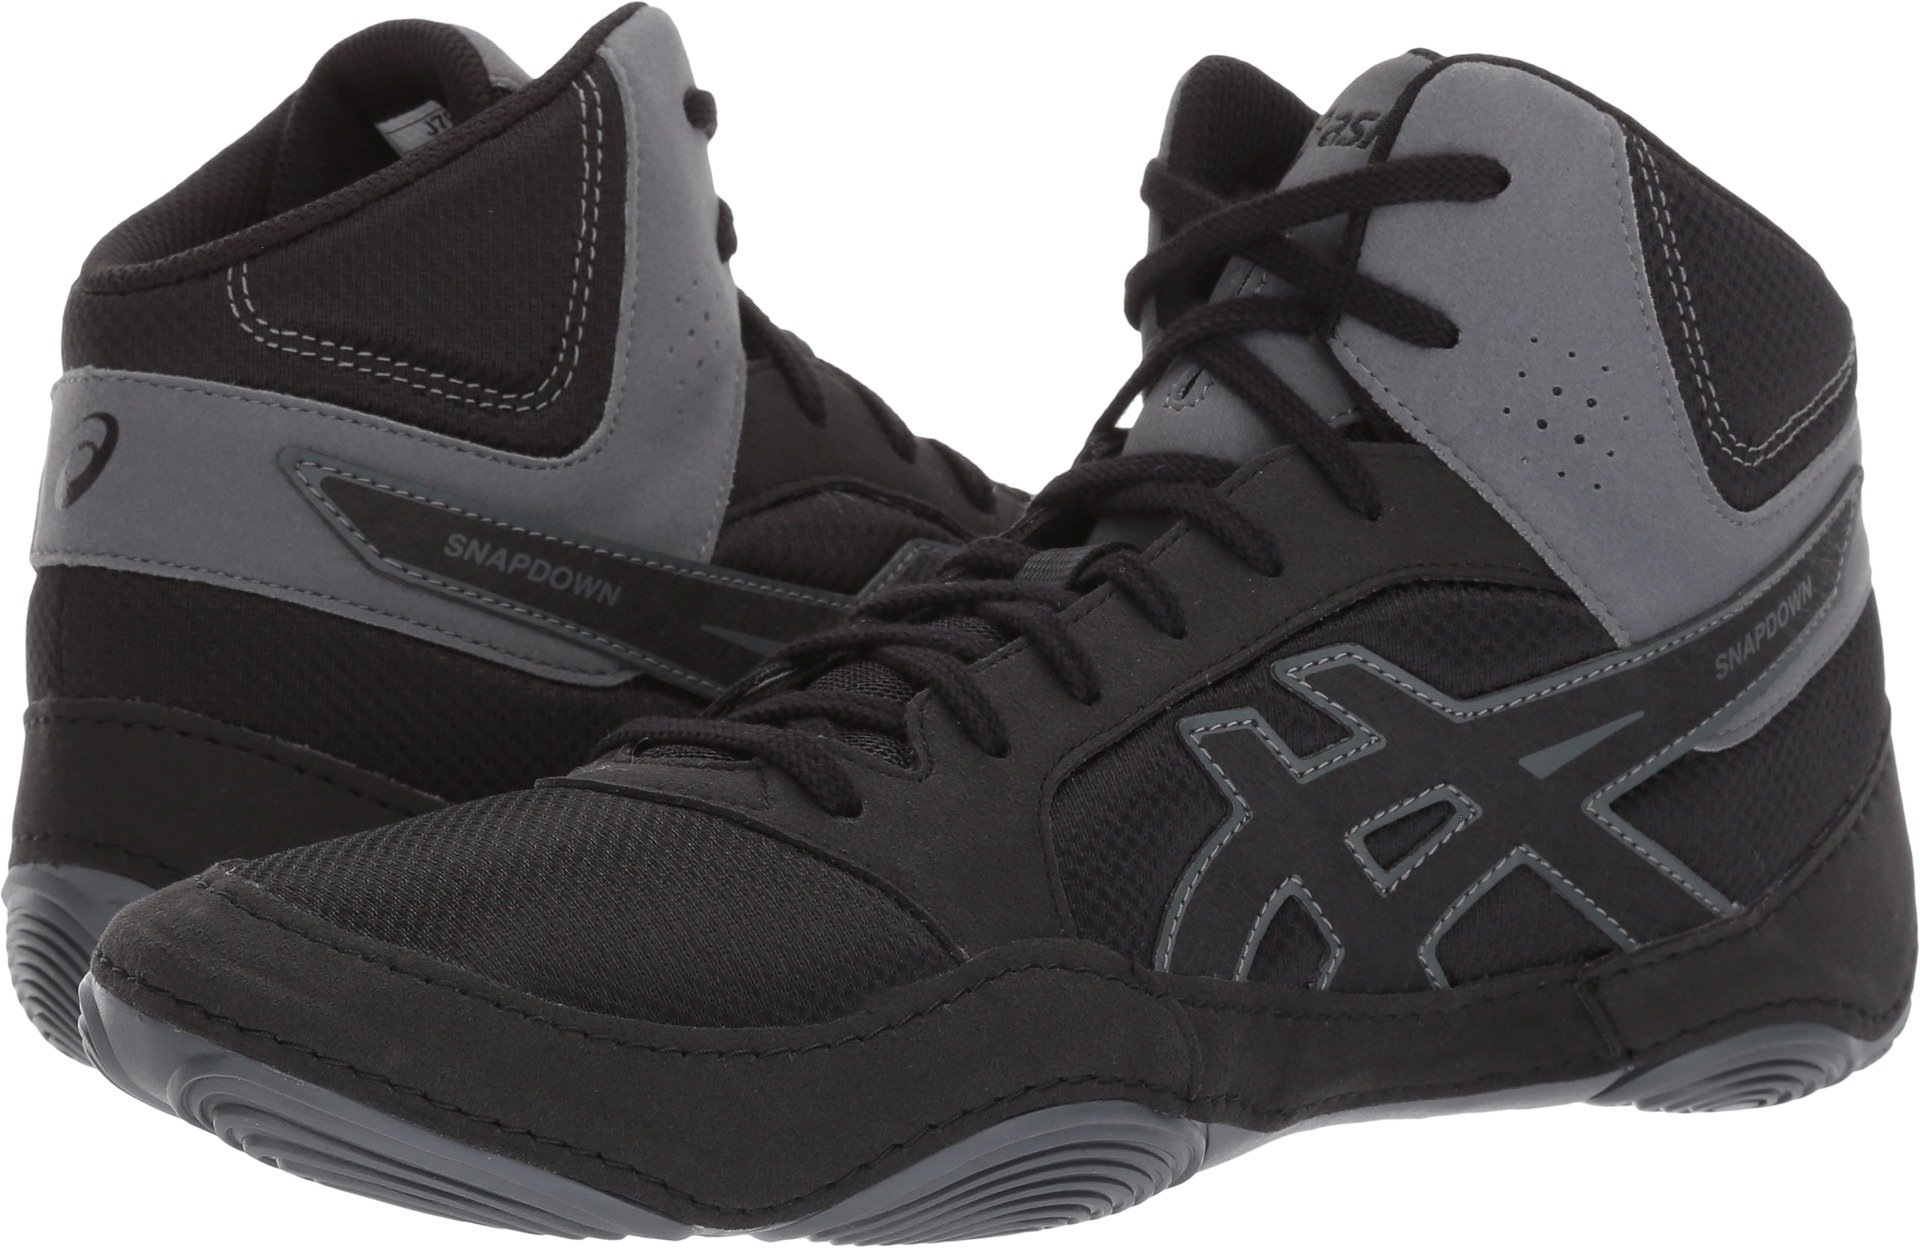 ASICS Men's Snapdown 2 Wrestling Shoe, Black/Black/Carbon, 6 Medium US by ASICS